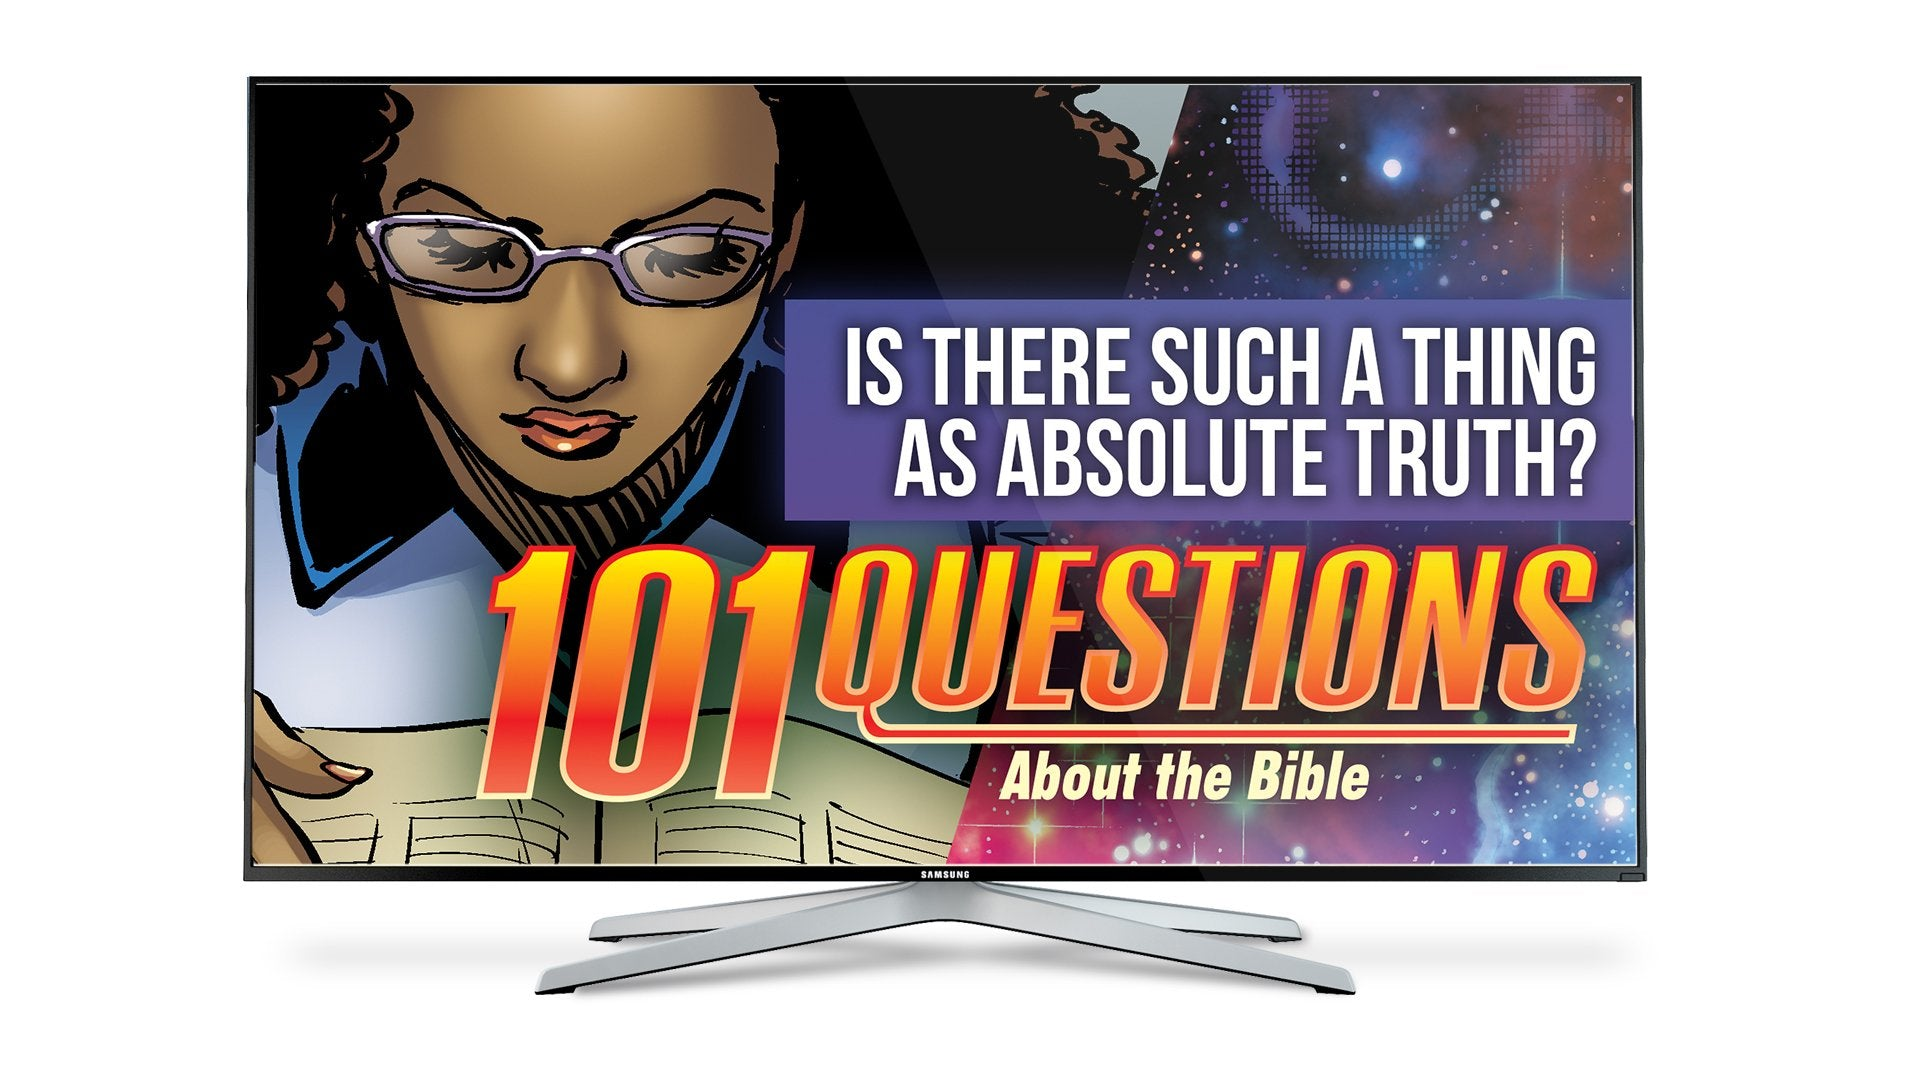 101 Questions: #11 Is There Such a Thing as Absolute Truth? - Kingstone Comics